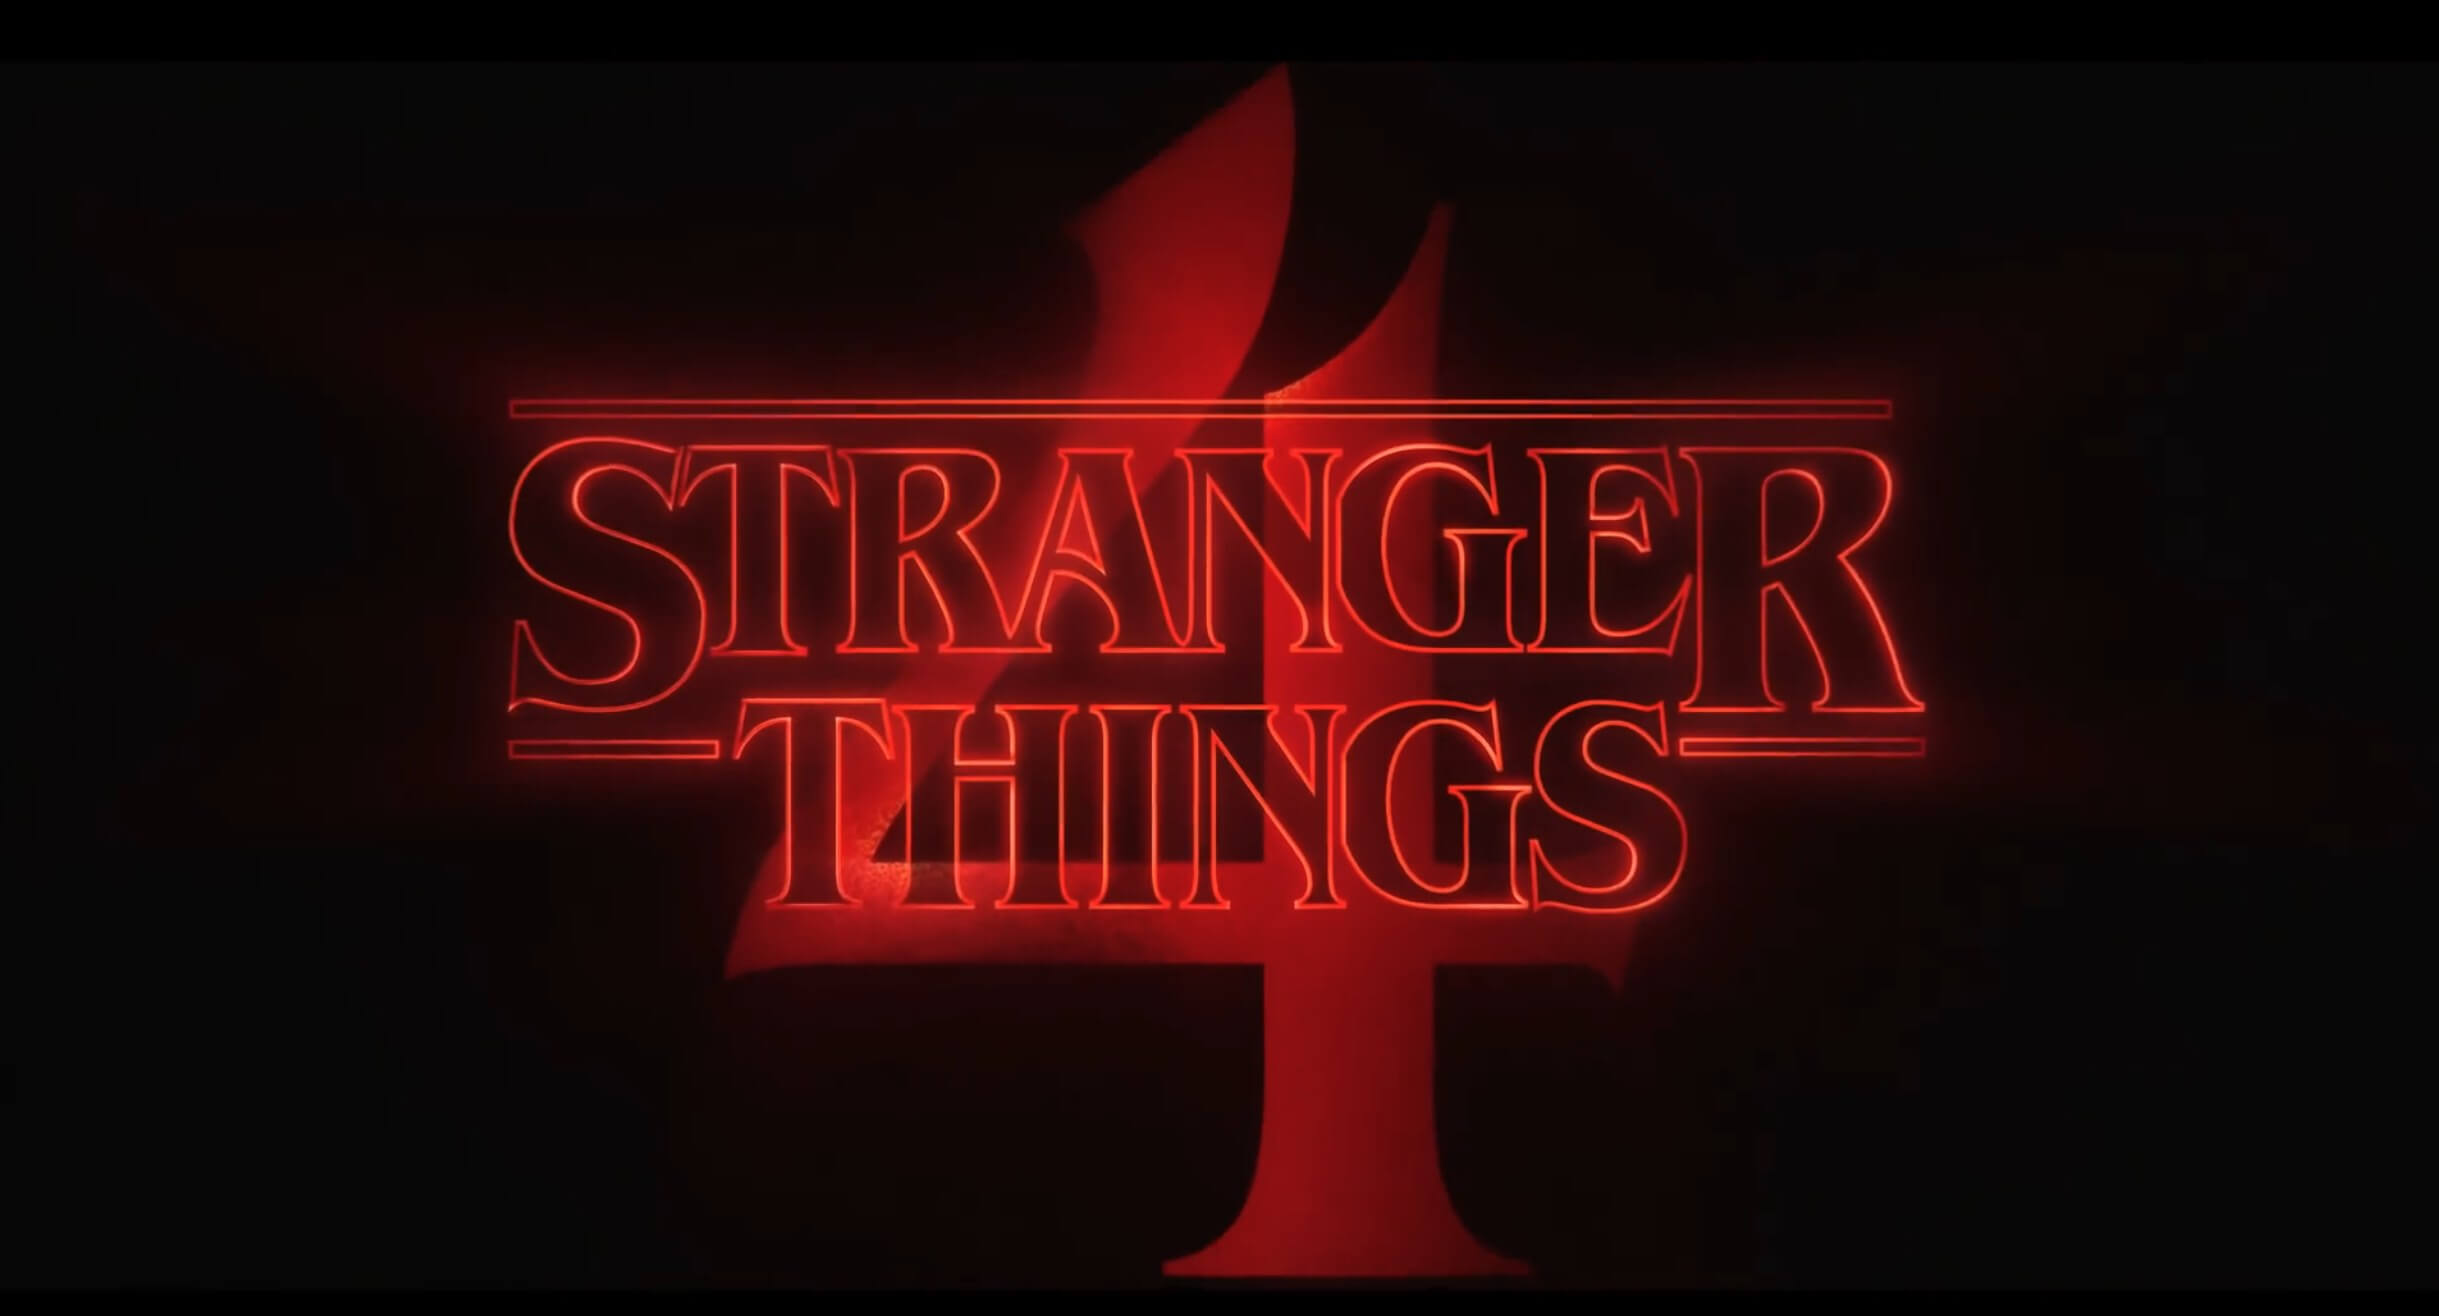 Netflix released the first trailer for Stranger Things 4 with a paradoxical spoiler